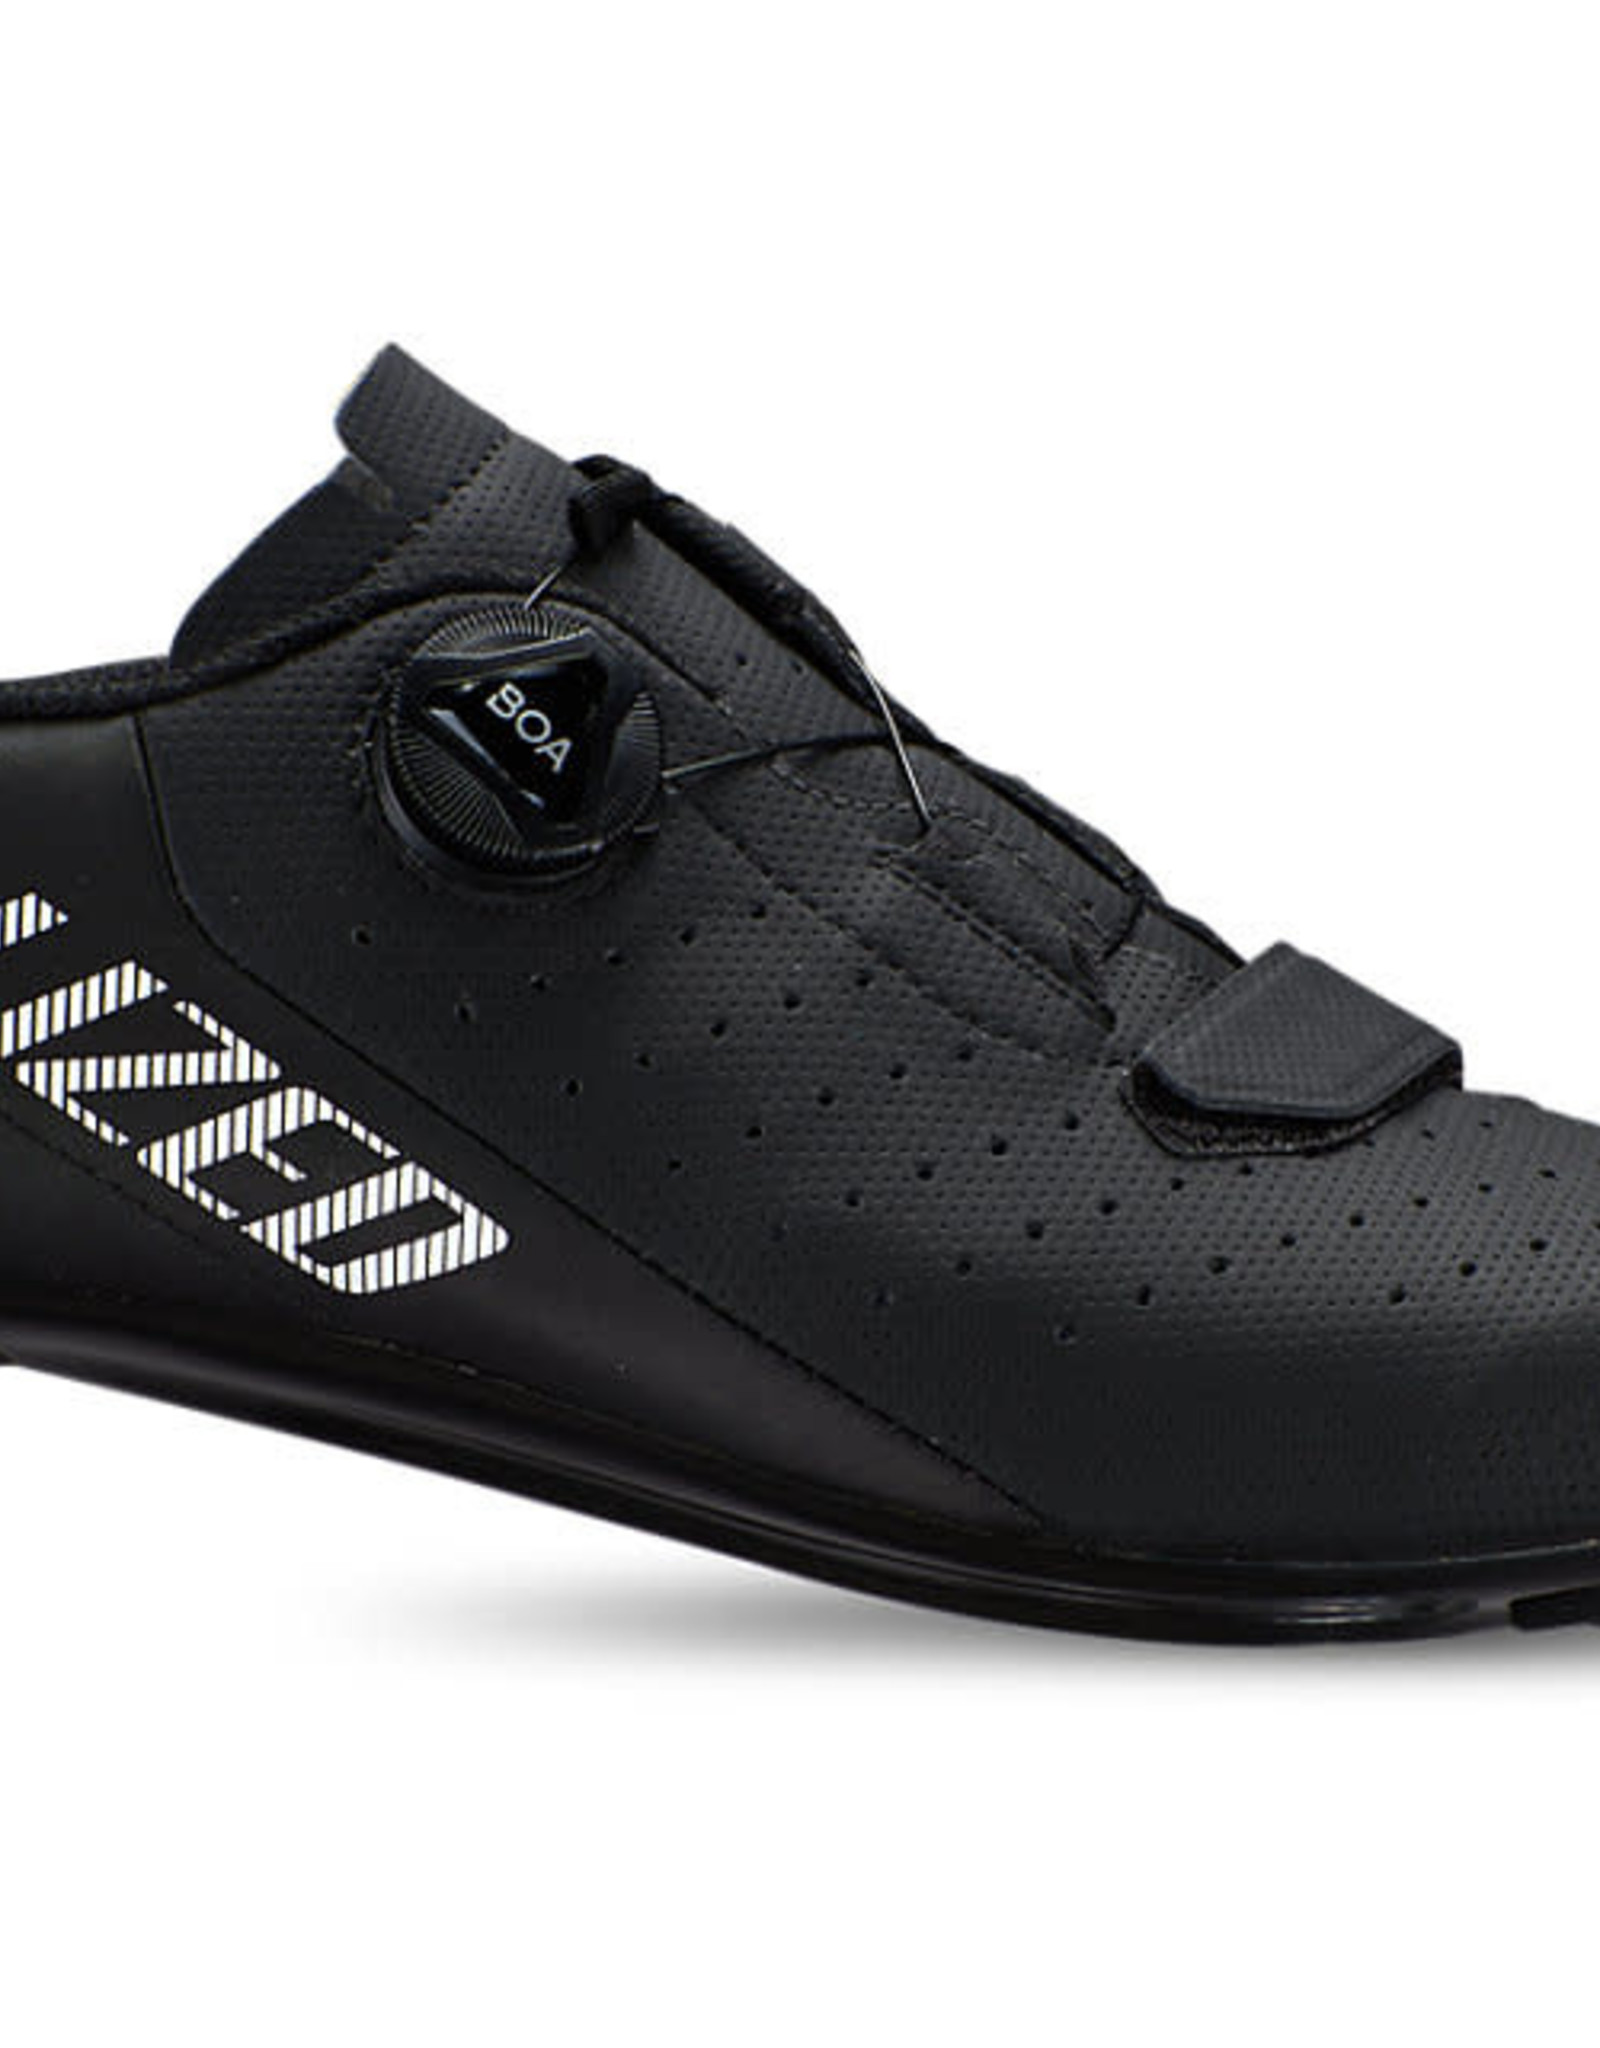 SPECIALIZED Specialized  TORCH 2.0 ROAD SHOE WIDE - Black 460